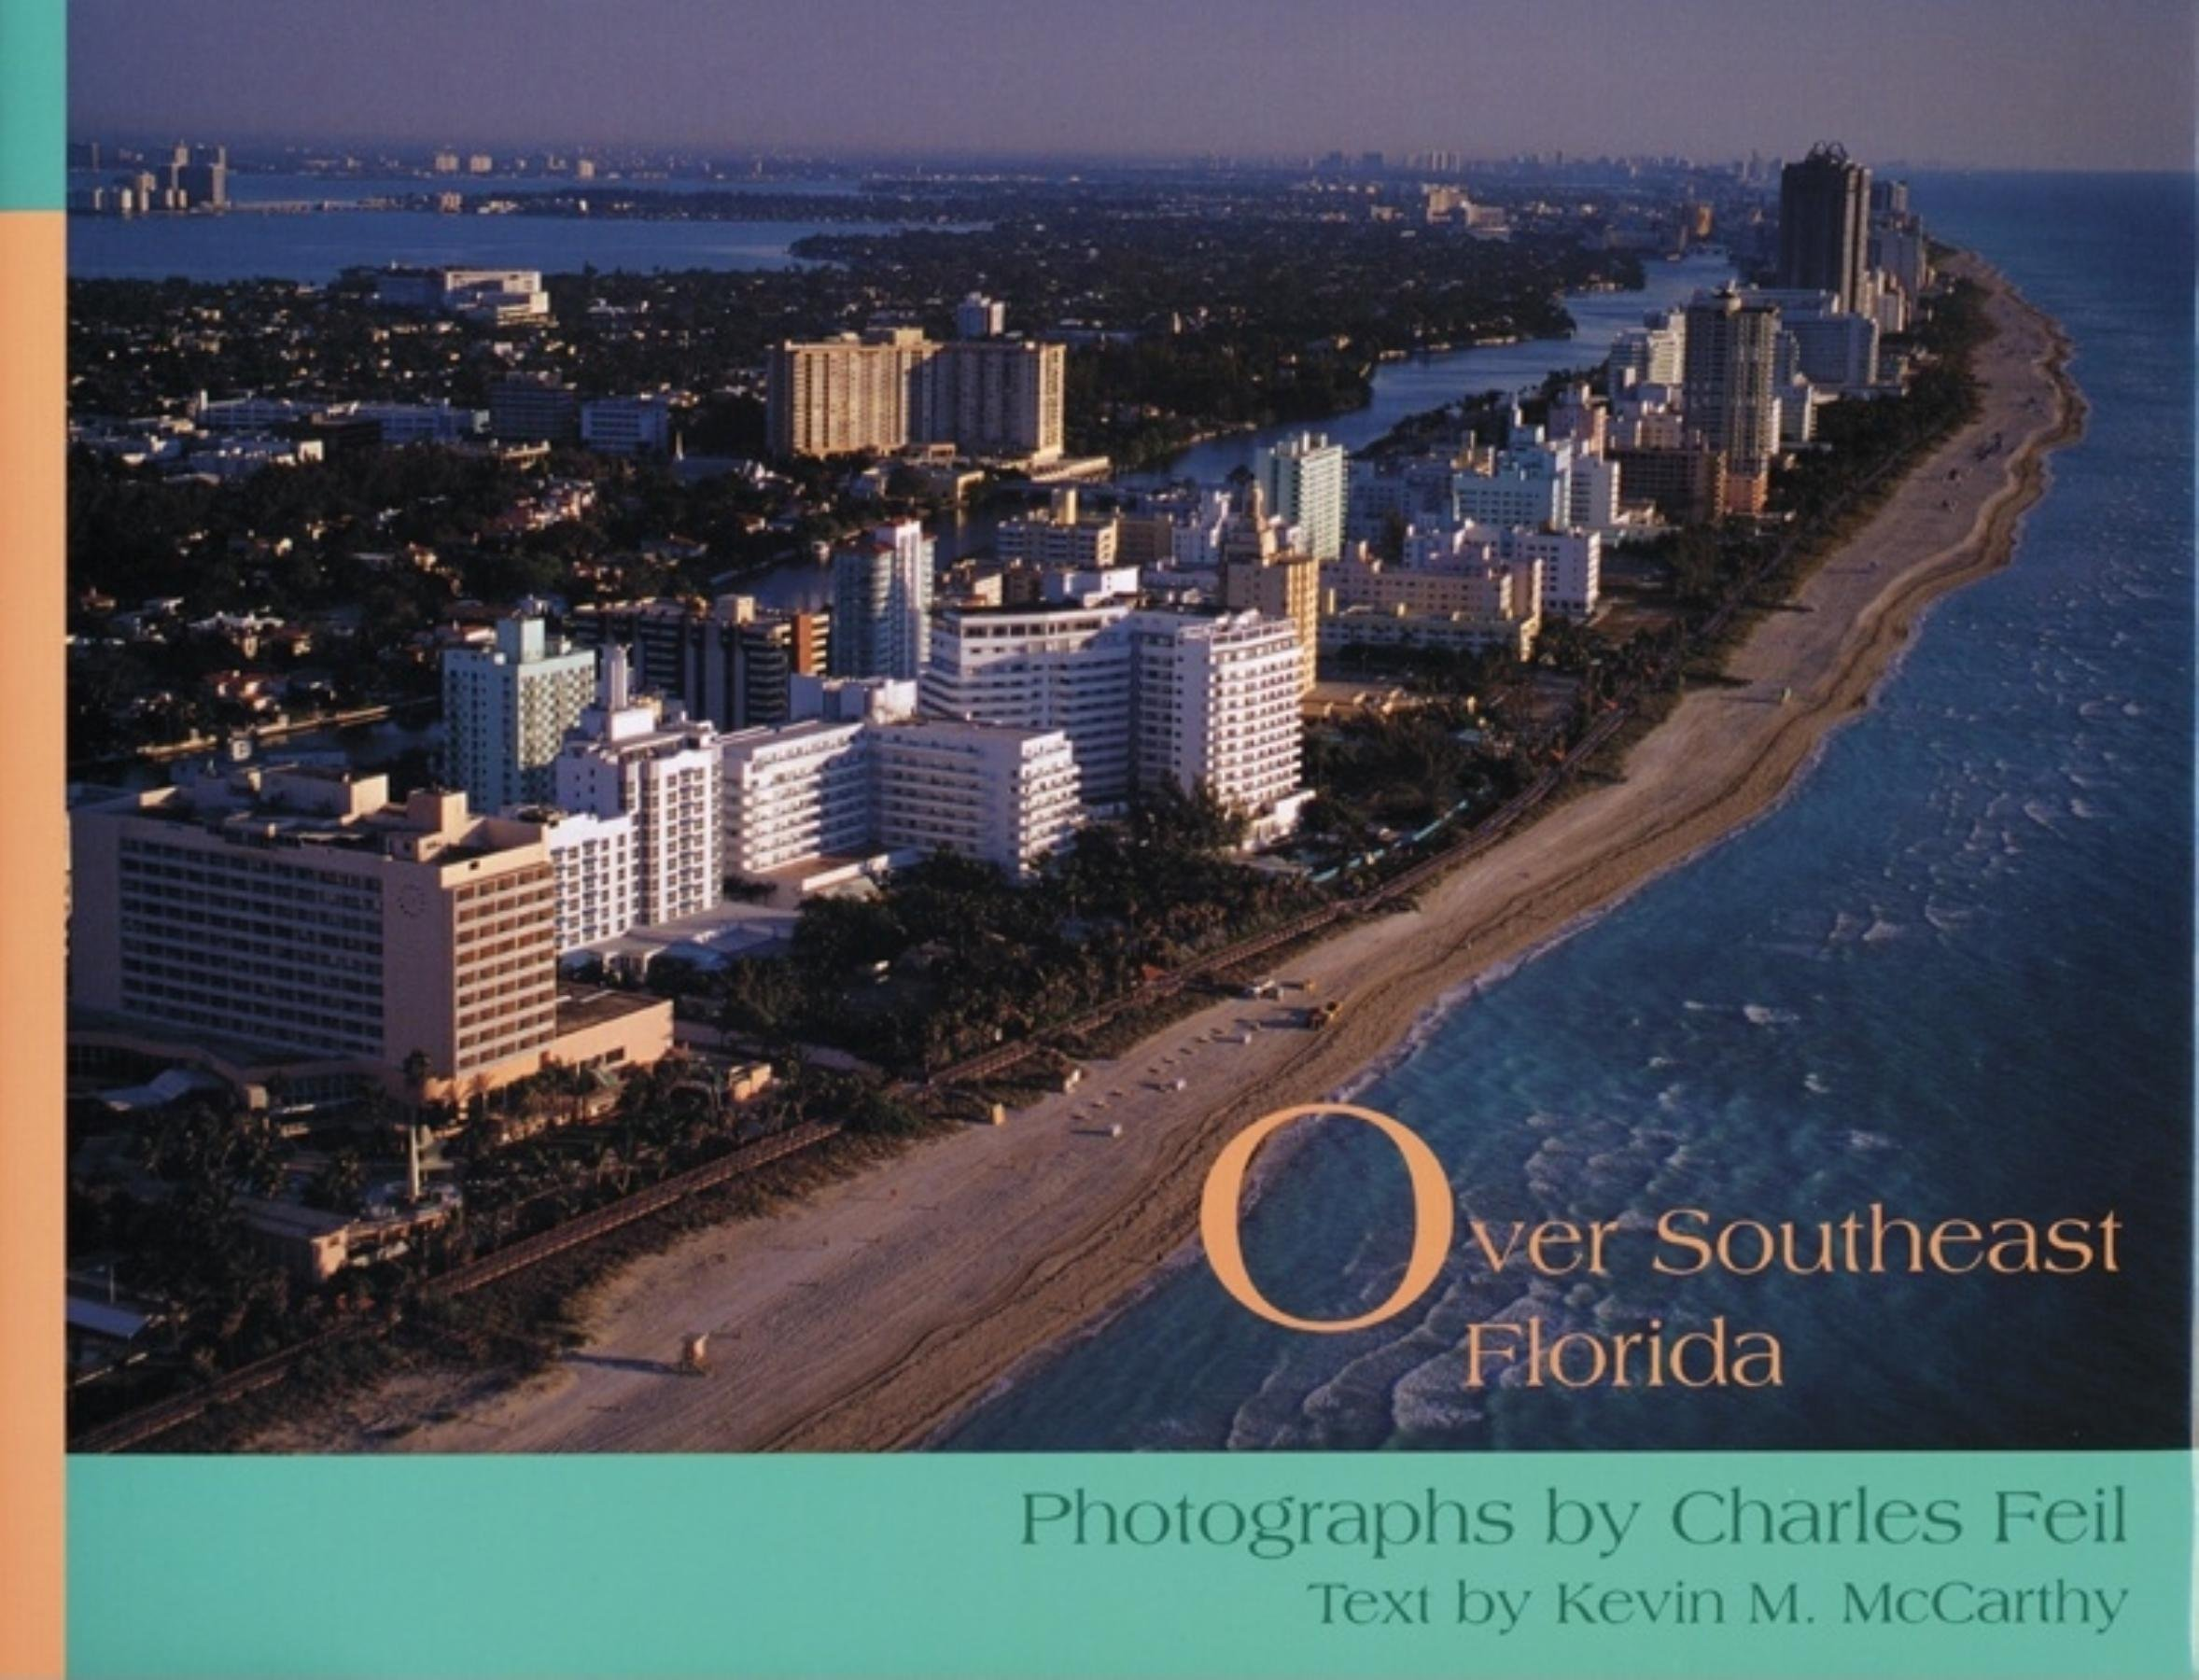 Download Over Southeast Florida PDF ePub fb2 ebook